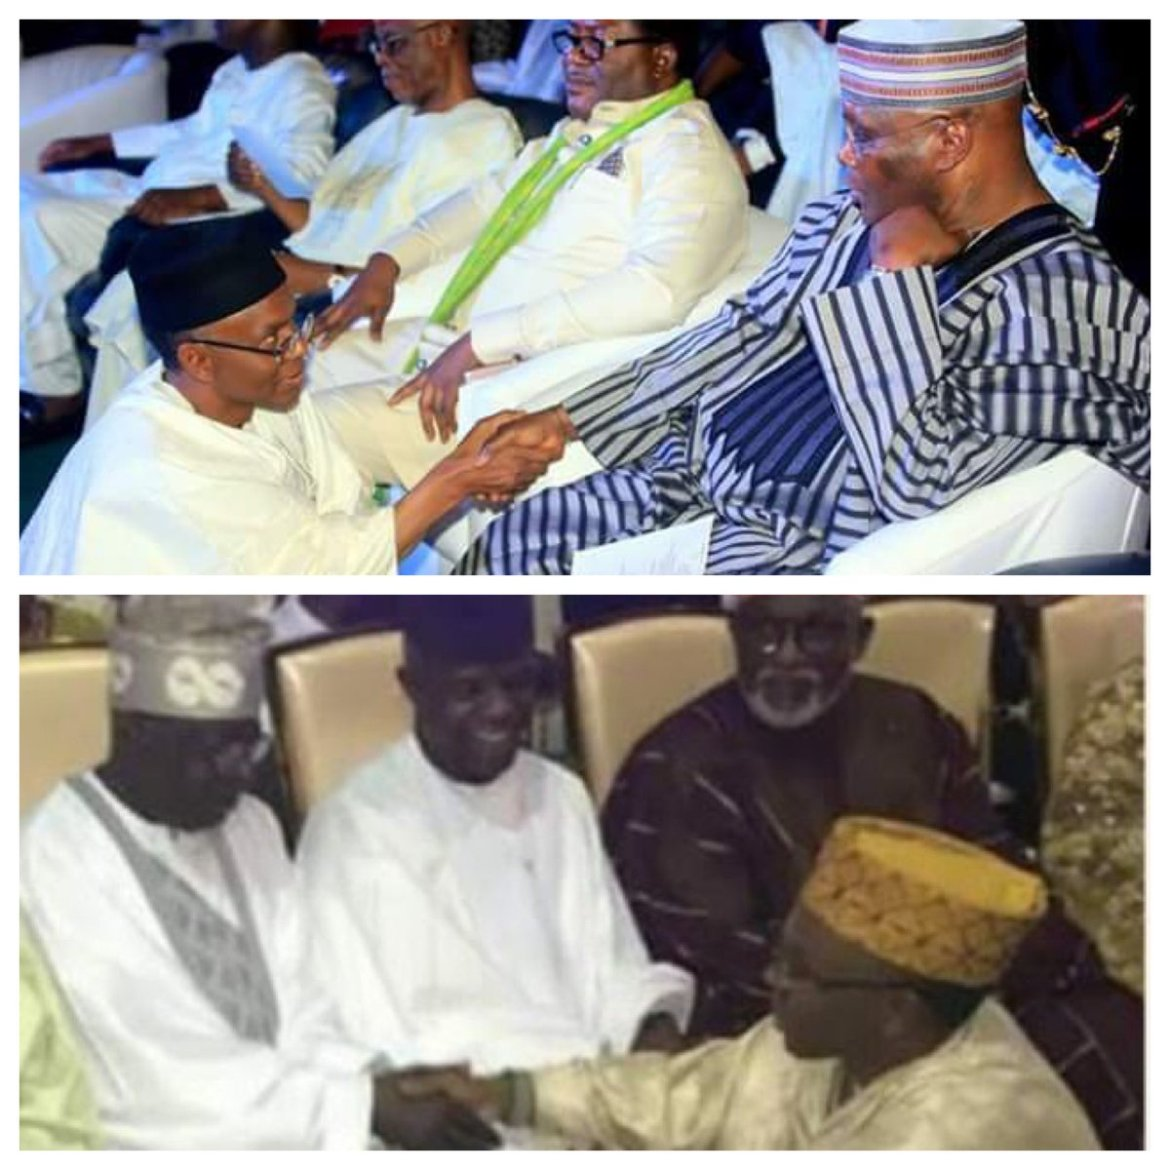 D5 i NVW0AA1RBc - [Photos]: Two People El-Rufai Has Knelt Down For When He Needed Them And Insulted Them After